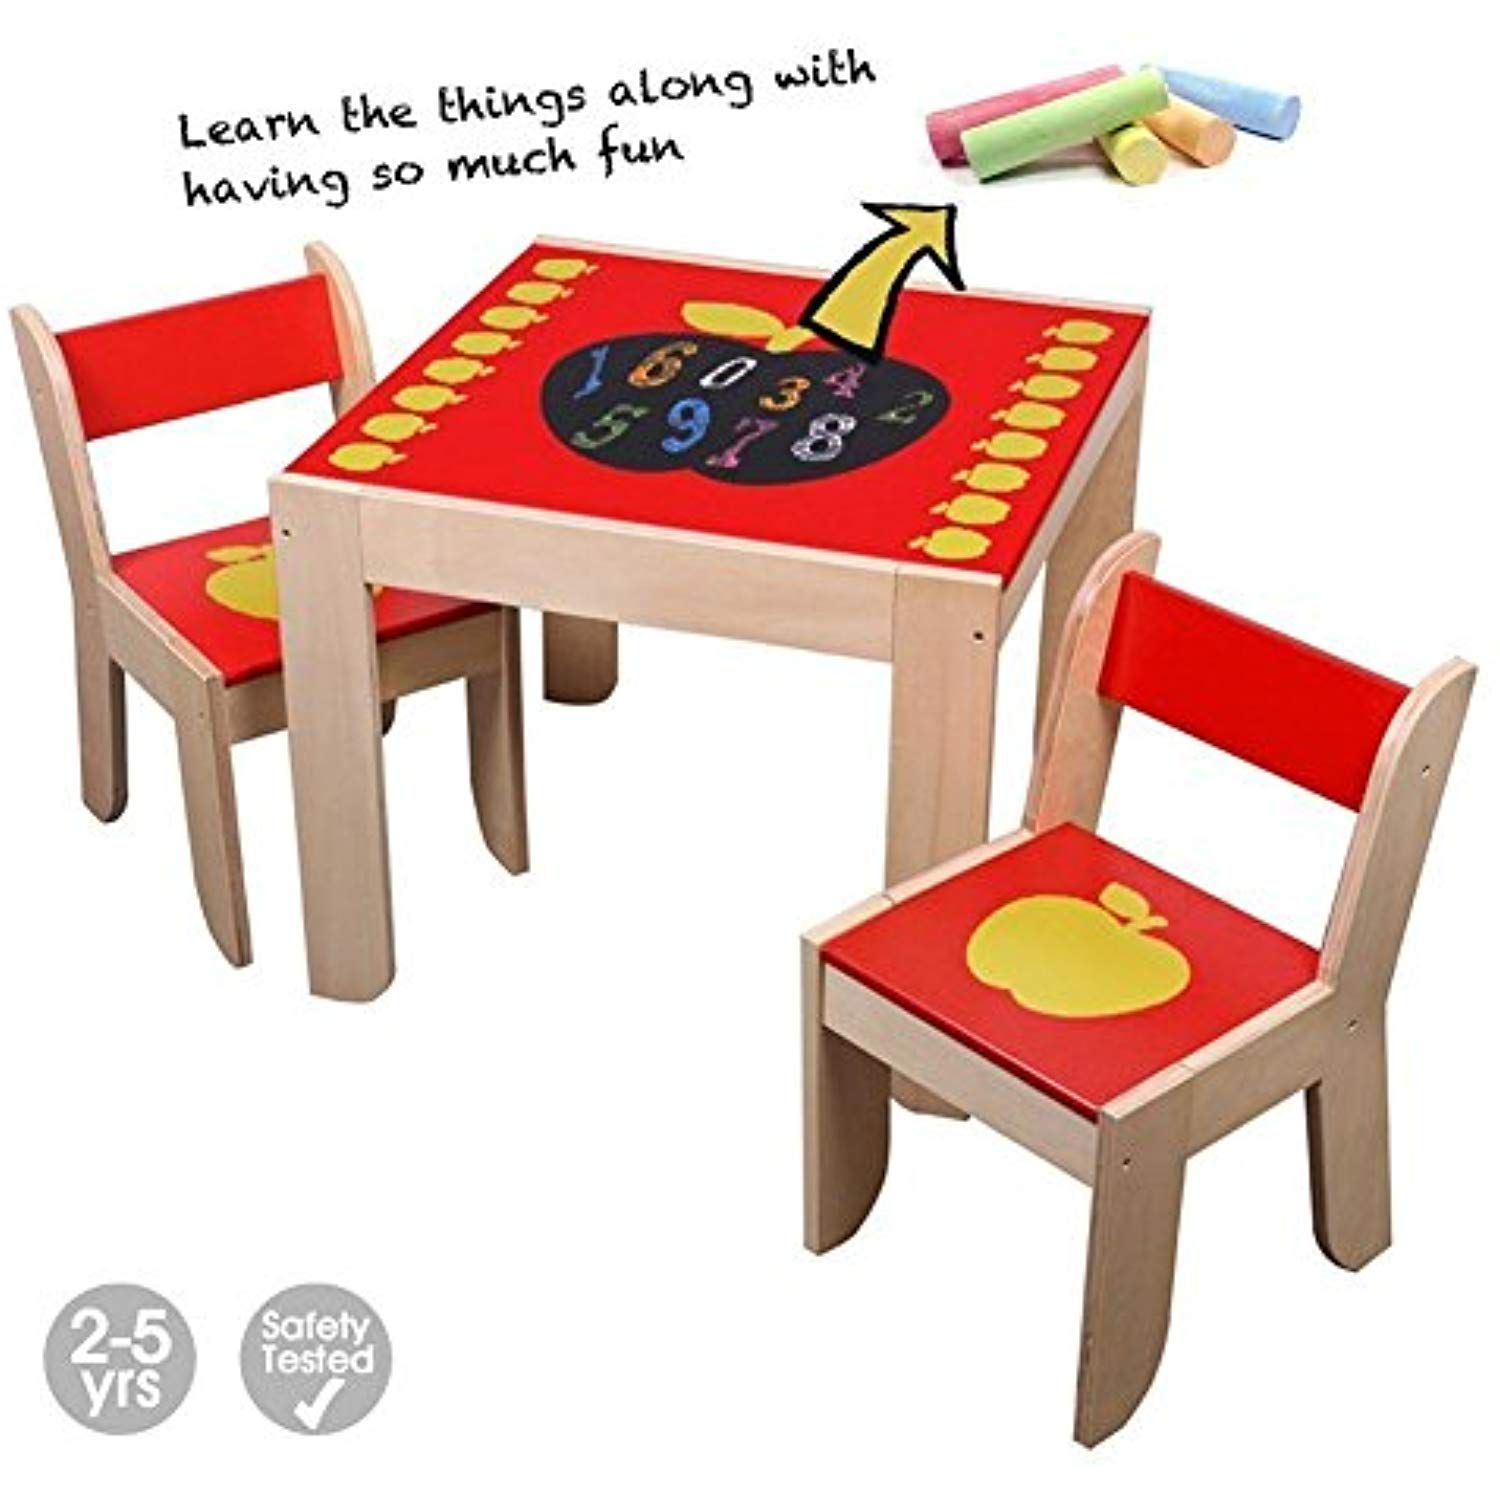 Labebe Wooden Activity Table Chair Red Apple Toddler Table With Chalkboard For 1 5 Years Learning Activity Ta Kids Dining Table Toddler Table Baby Play Table